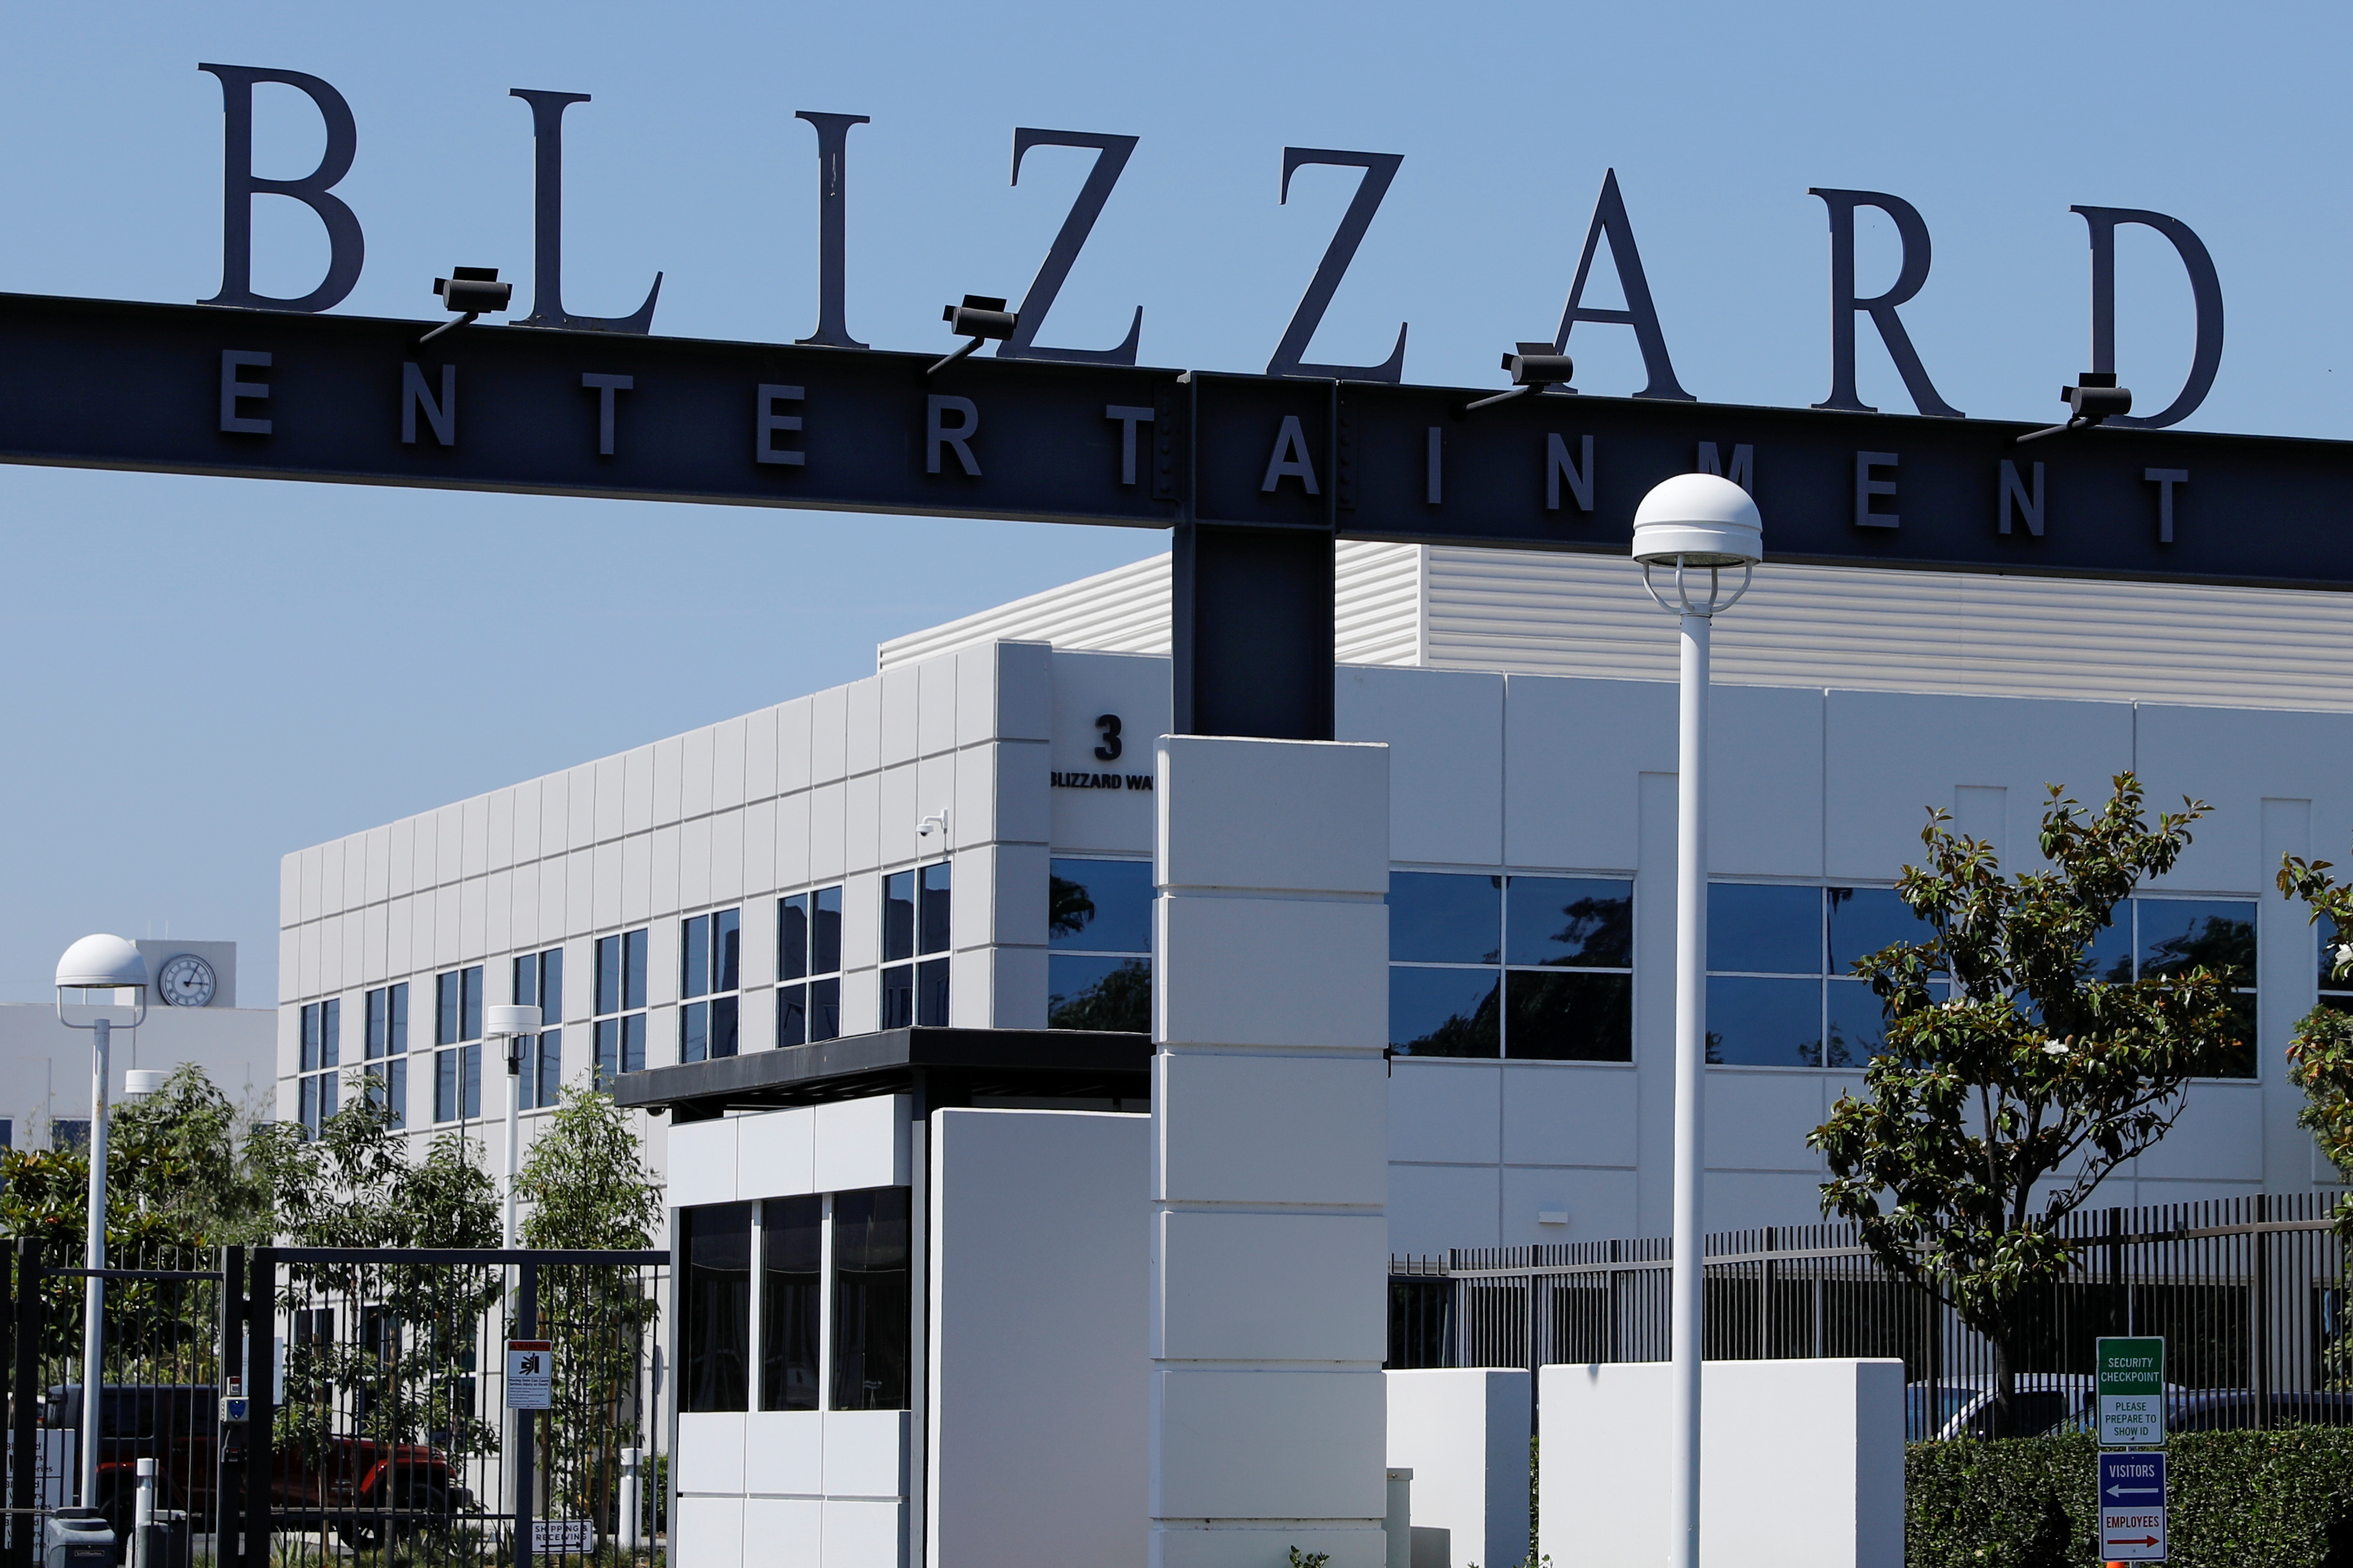 Activision Blizzard execs respond to harassment and discrimination lawsuit | Engadget